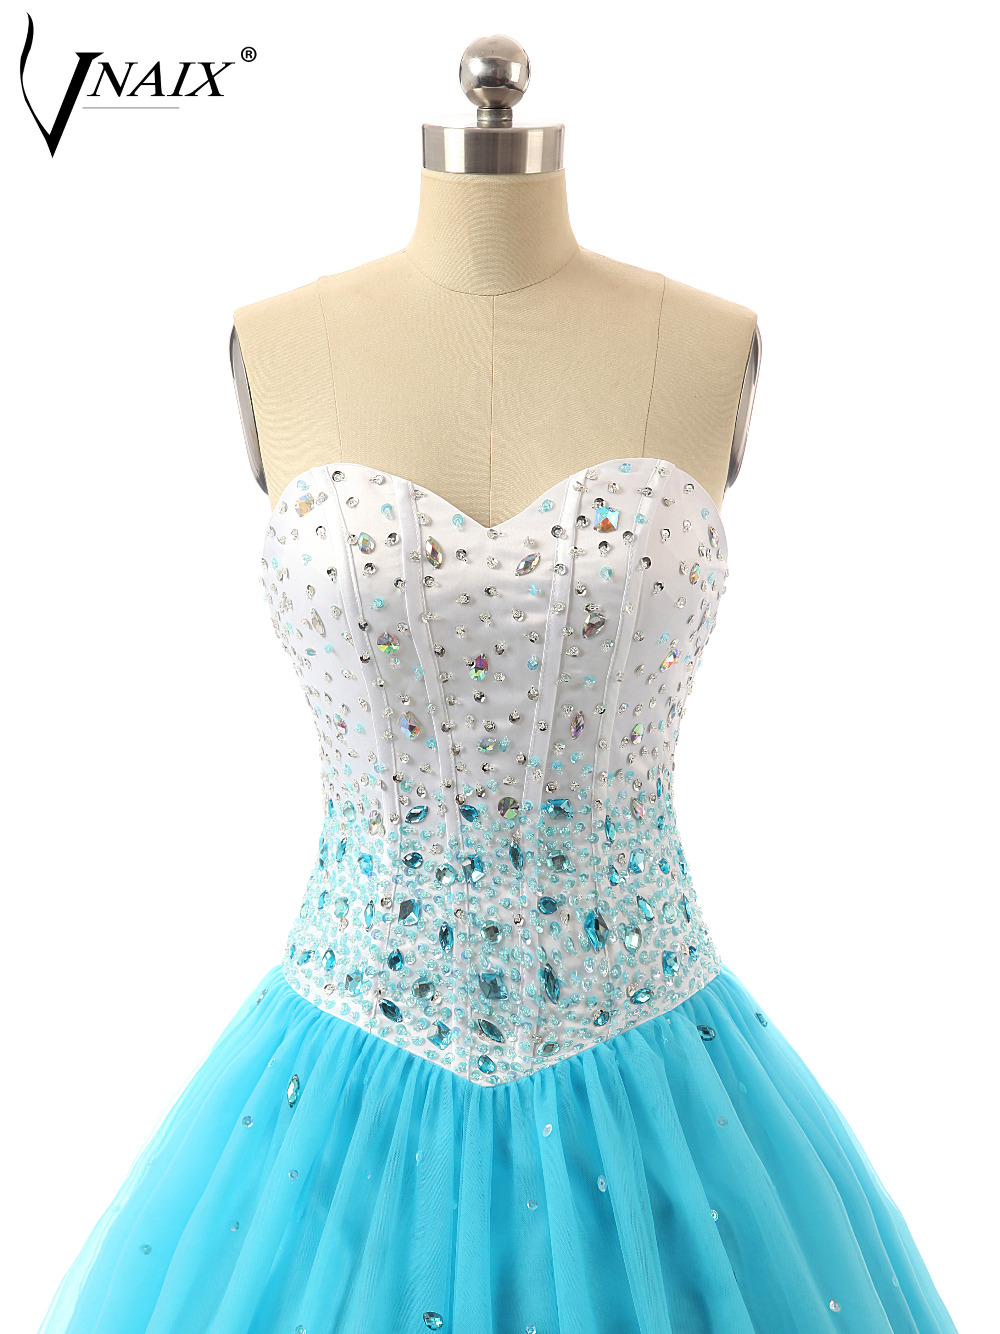 Vnaix P1115 Puffy Sweetheart Blue Ball Gown Tulle Prom Dress-in Prom ...